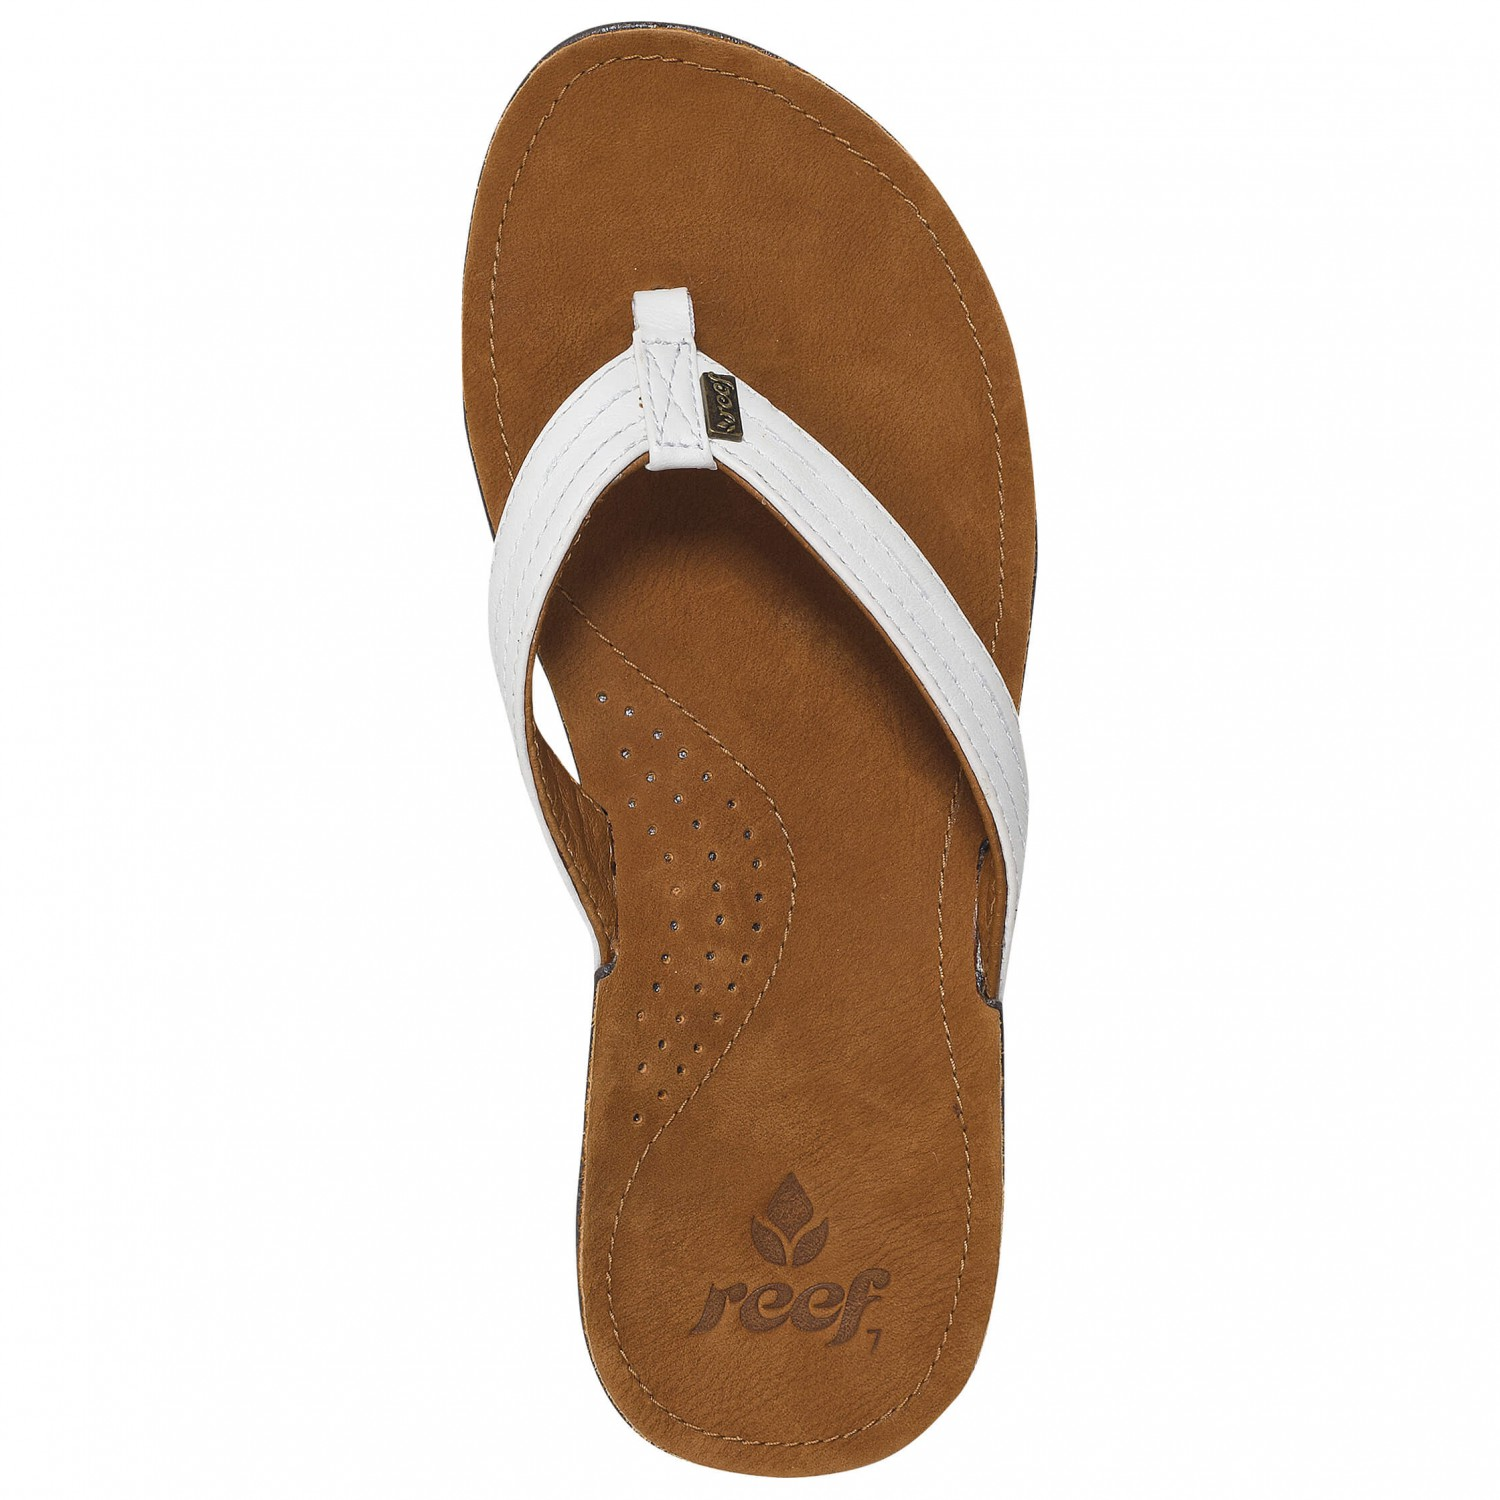 Reef - Women's Miss J -Bay - Sandalen Tan / White